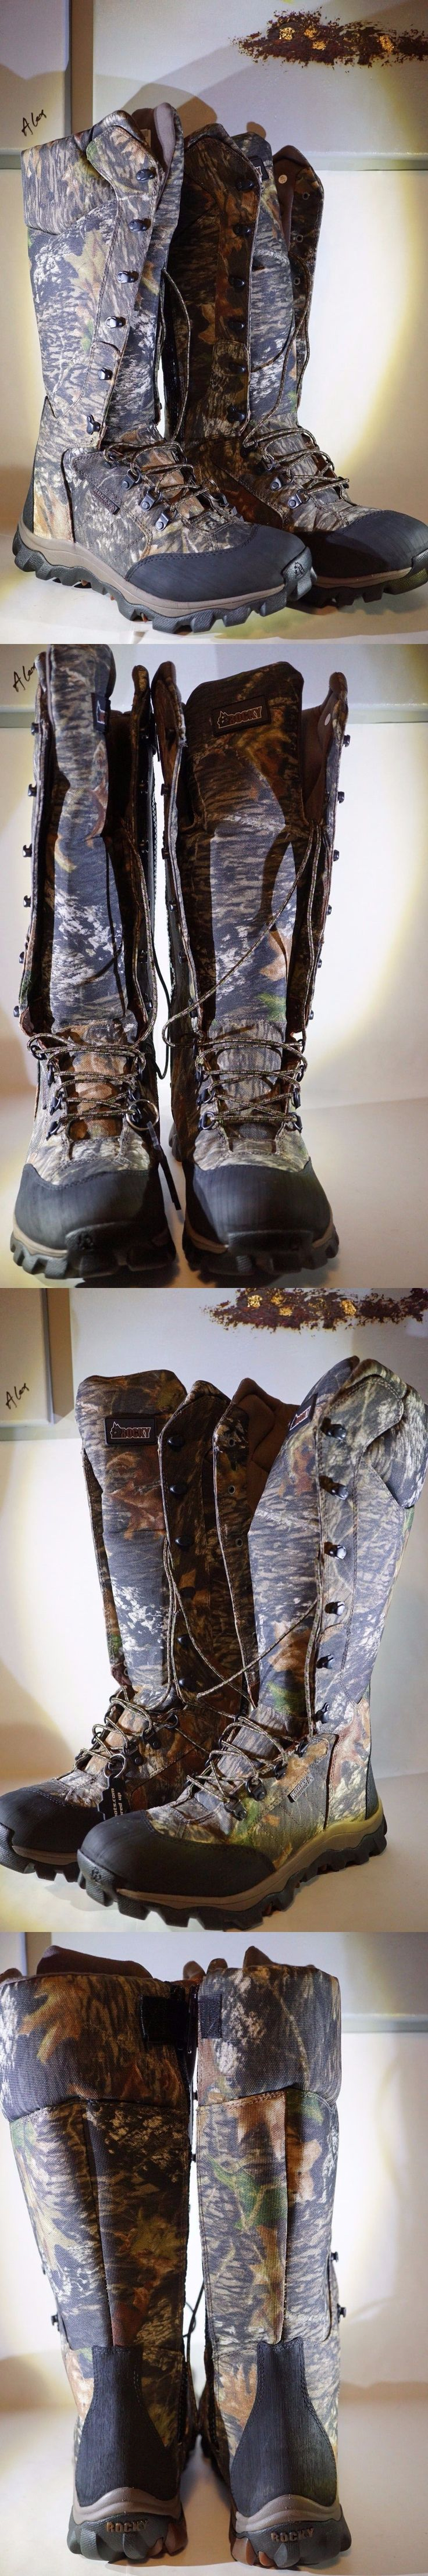 Hunting Footwear 153008: Rocky Mens Lynx Snake Boot Hunting Boot Side Zipper, Mobu, Size 11 M Us -> BUY IT NOW ONLY: $159.99 on eBay!